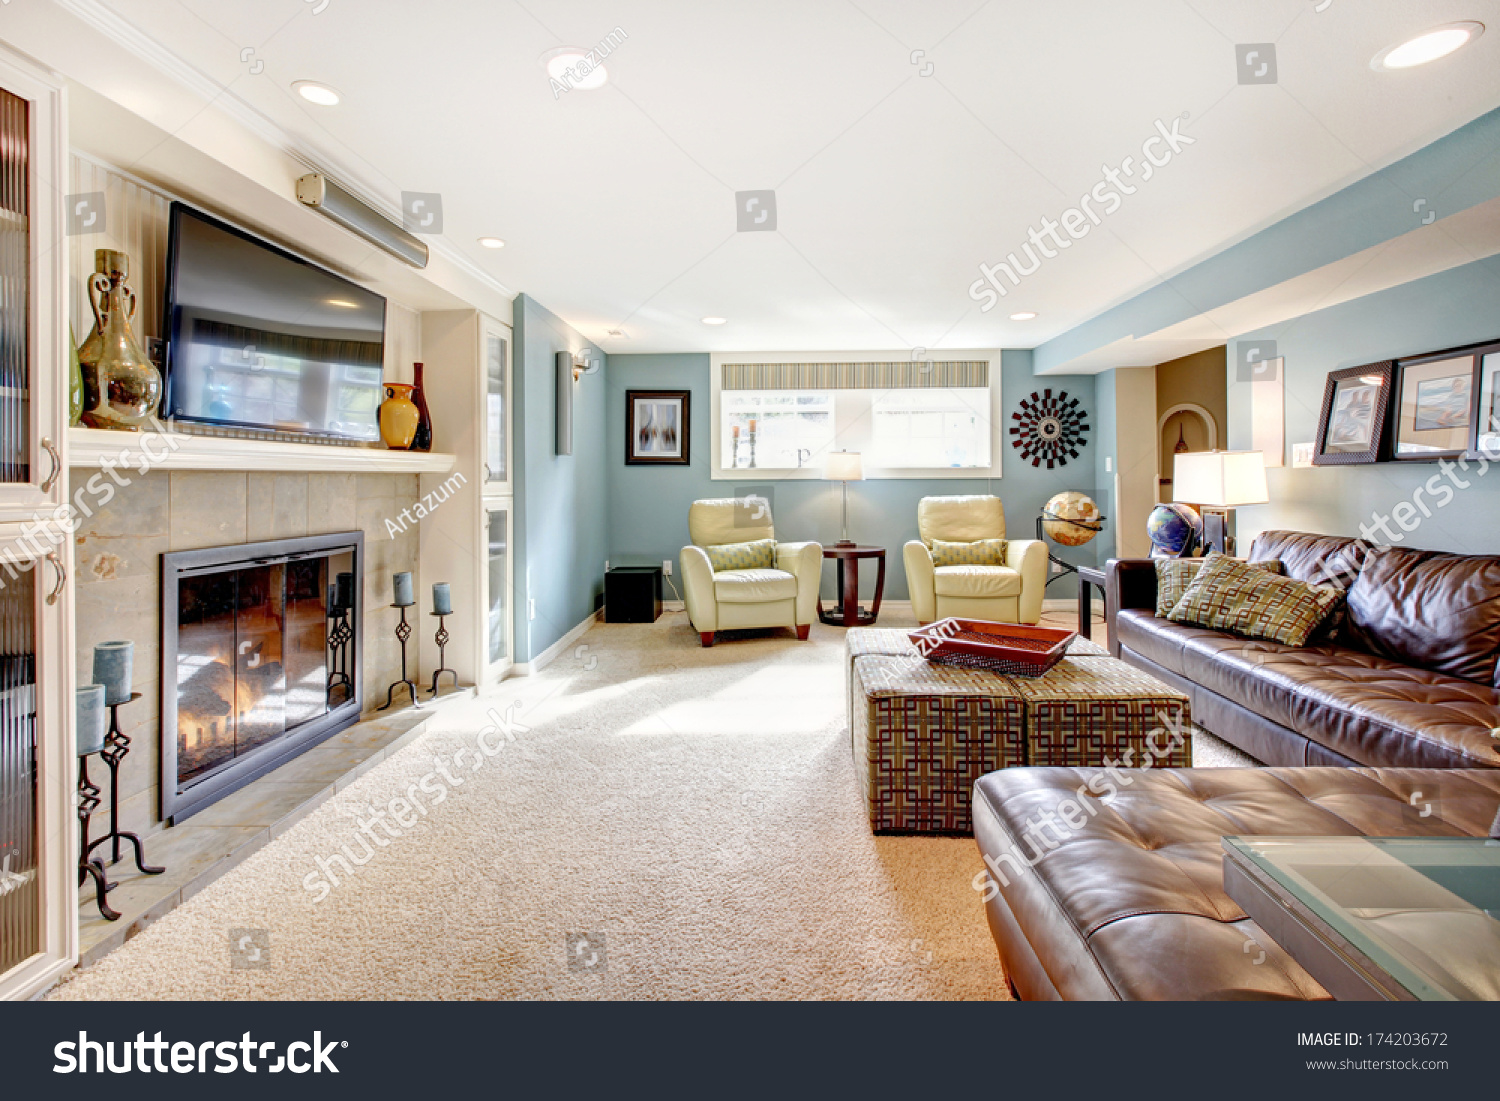 Light Blue Living Room Leather Furniture Stock Photo 174203672 Shutterstock